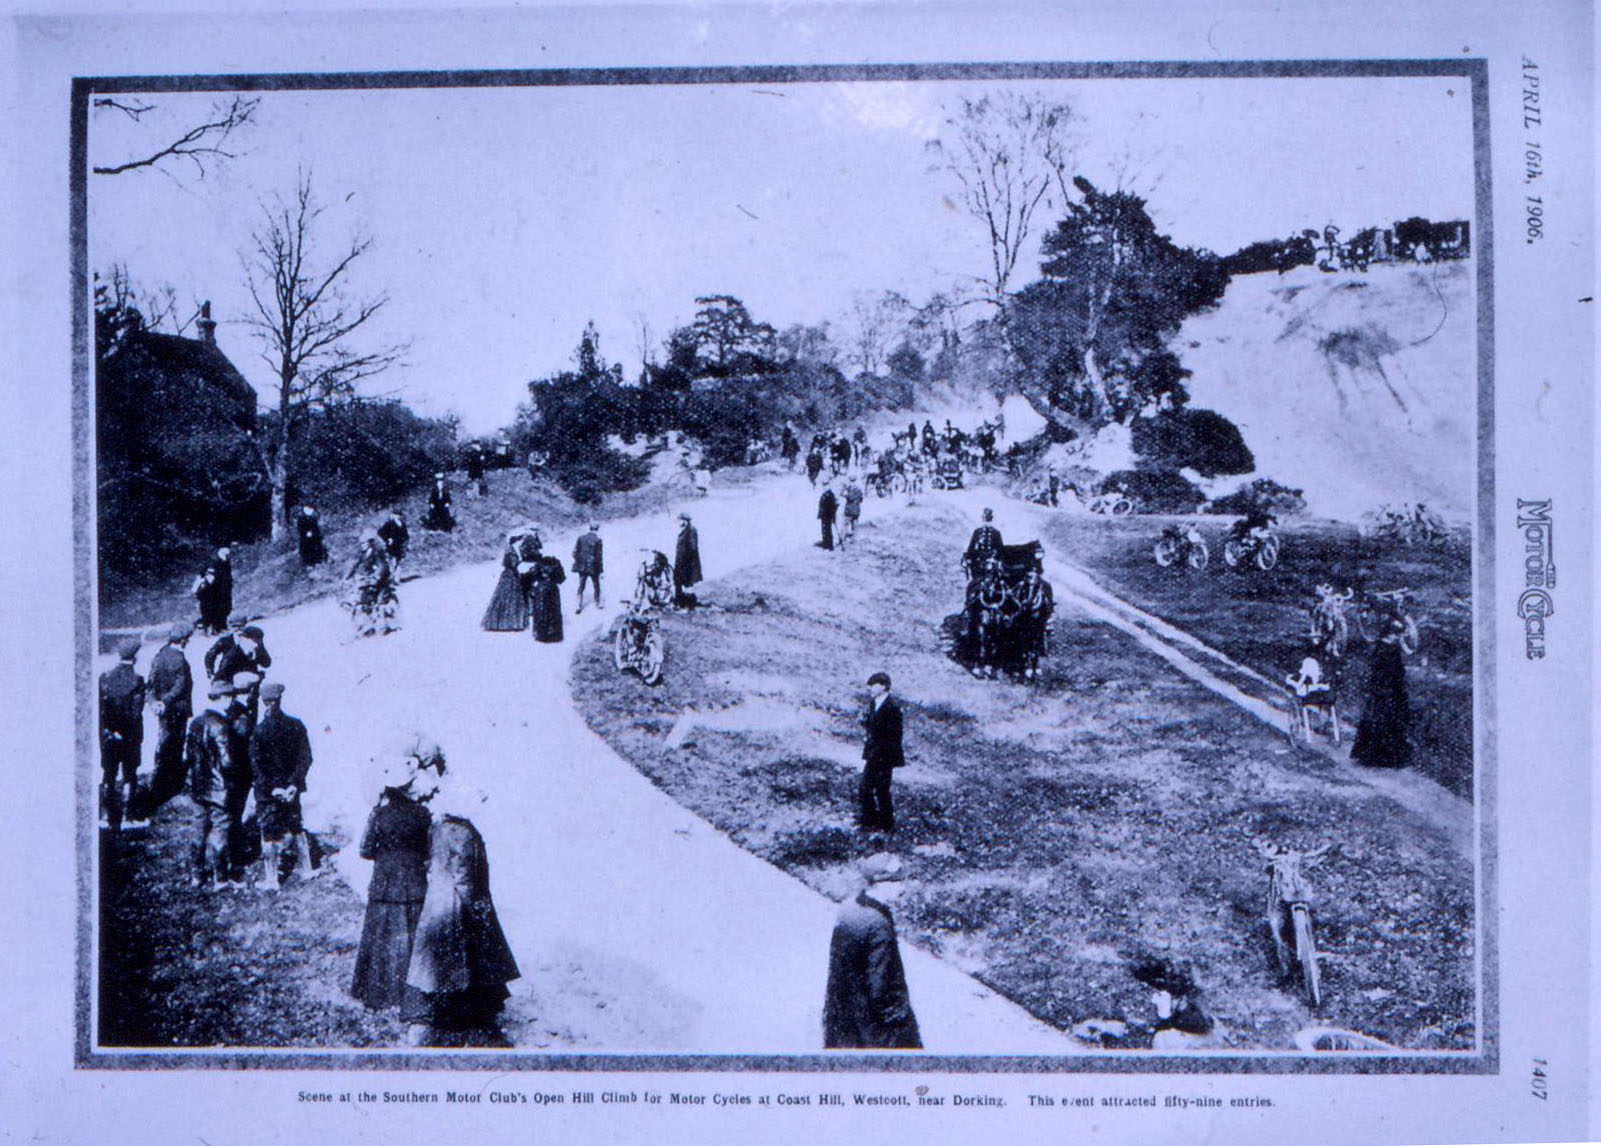 Southern Motor Club Open Hill Climb at Coast Hill 1906